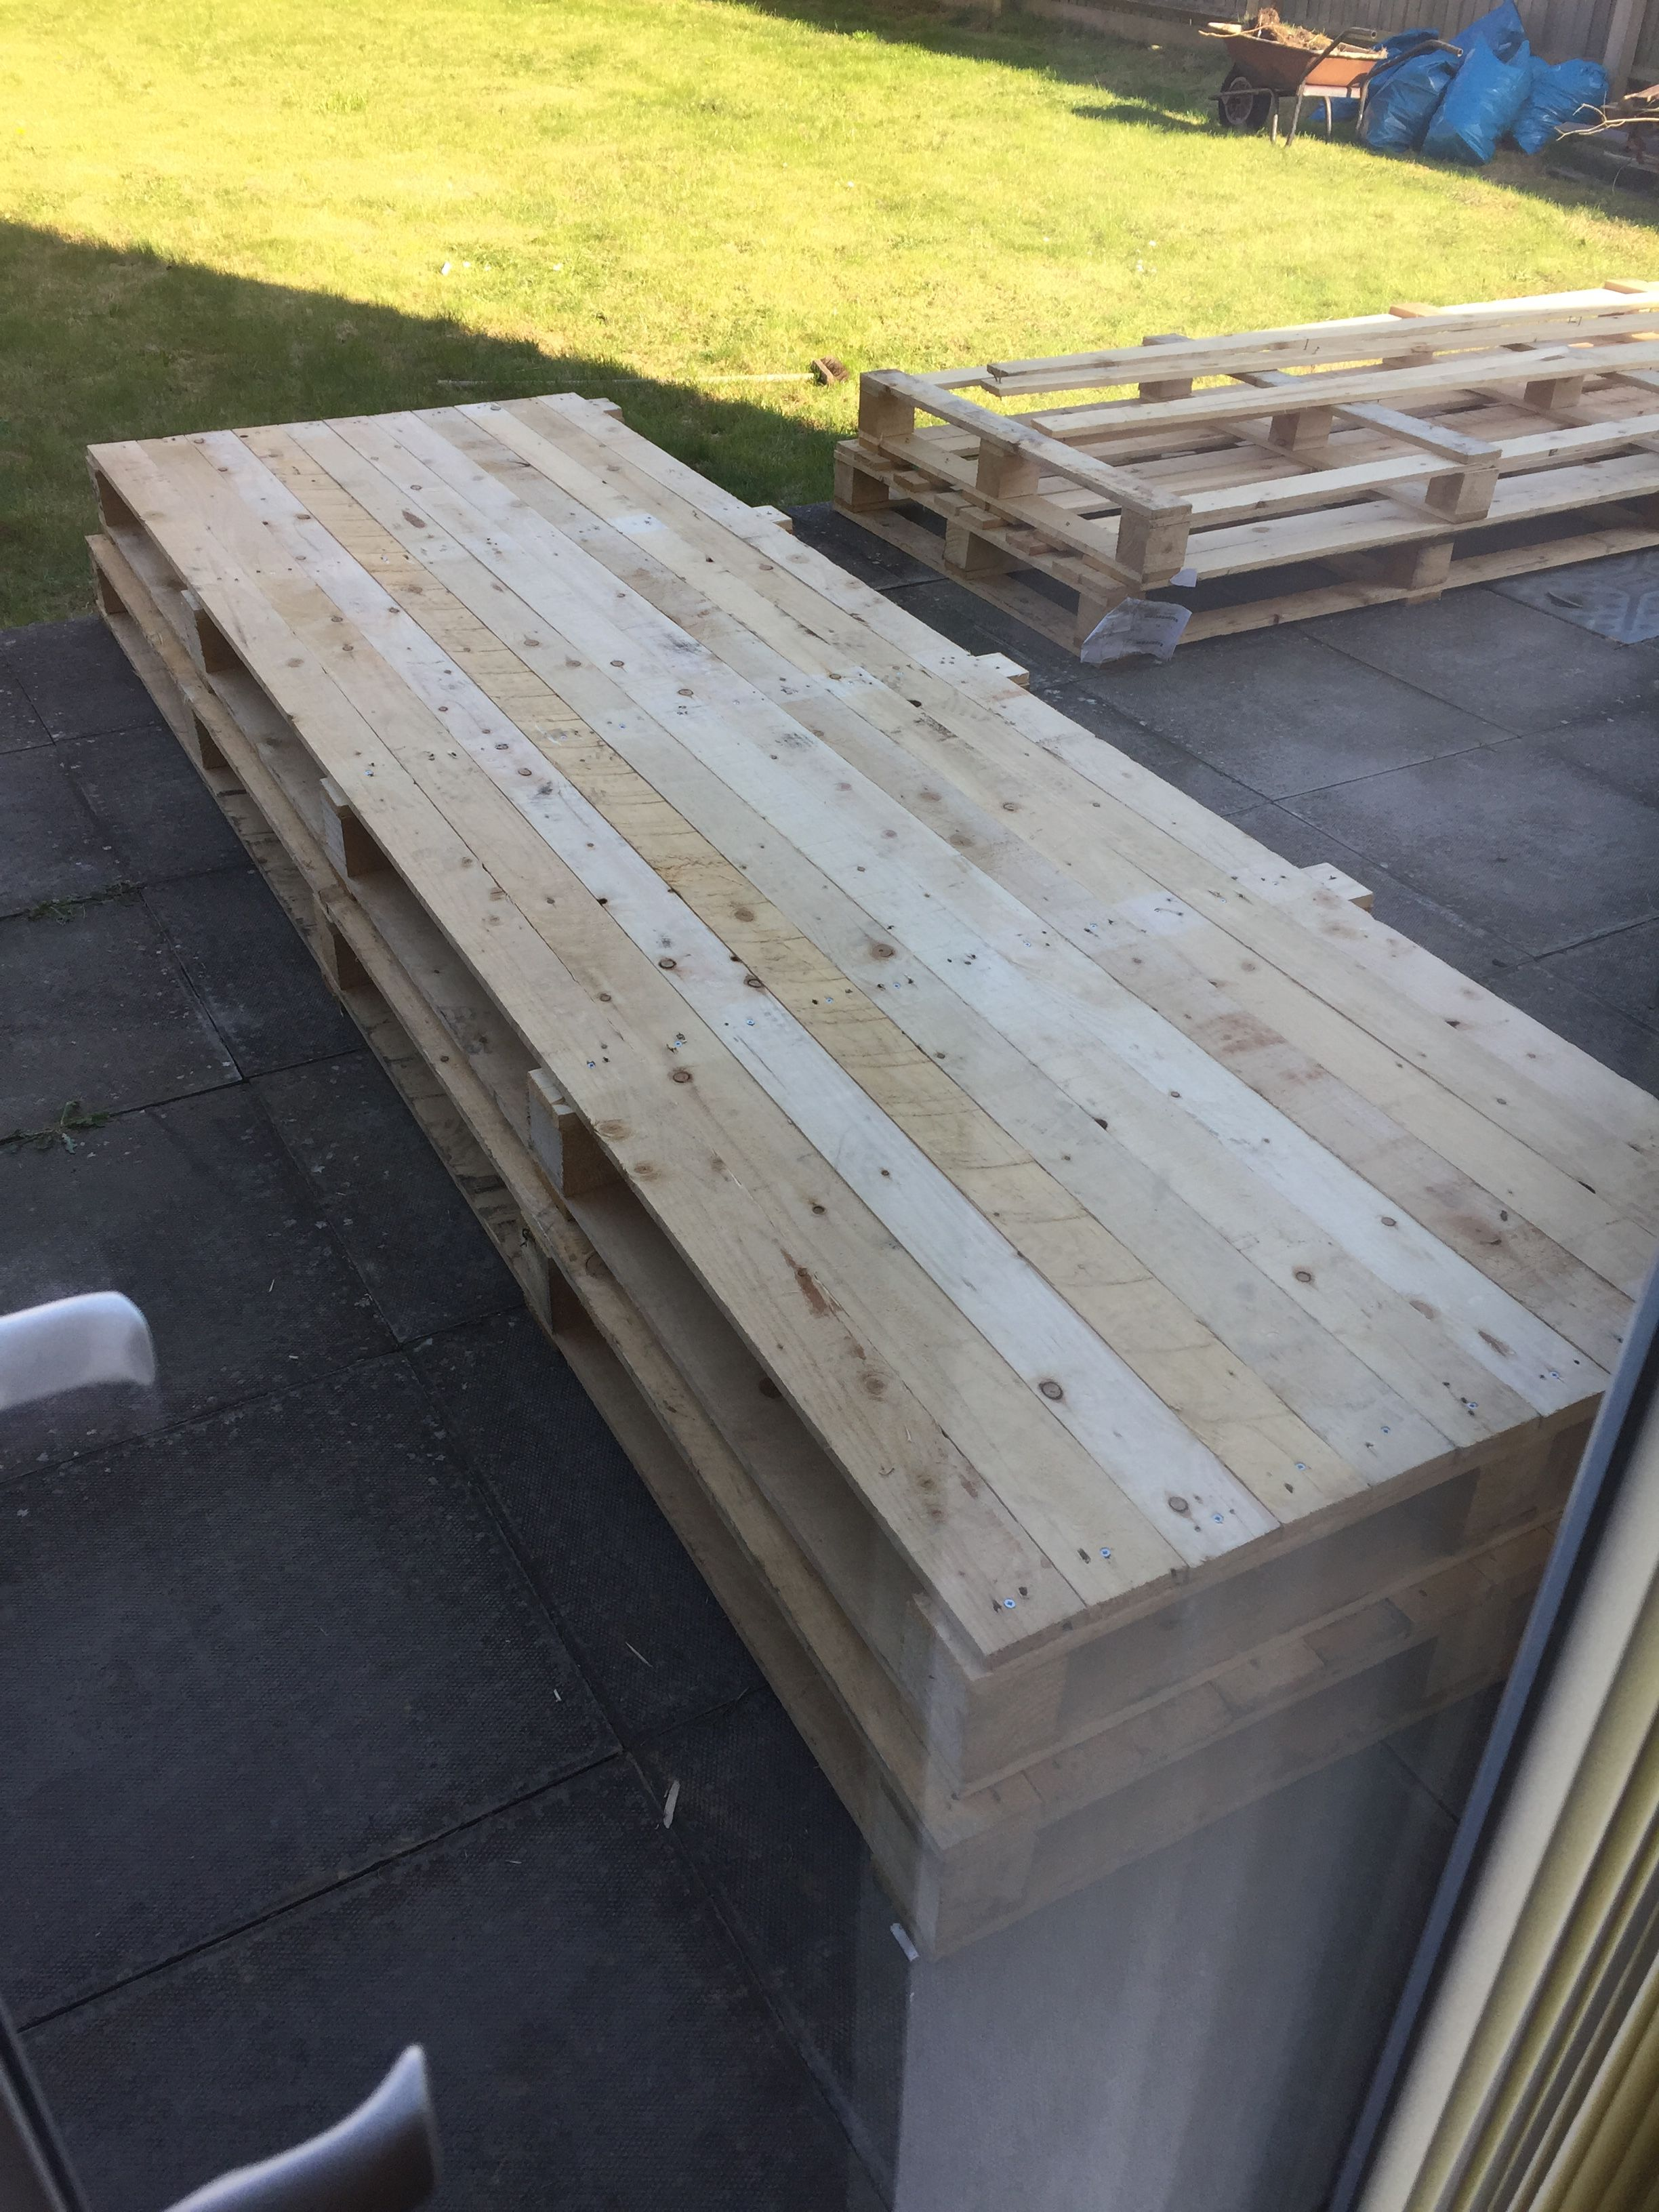 Side Panels Made From Pallet Wood Pried Away From Original Position Where There Were Gaps Nails All Hammered Out And Re Wooden Slats Pallet Shed Wood Pallets